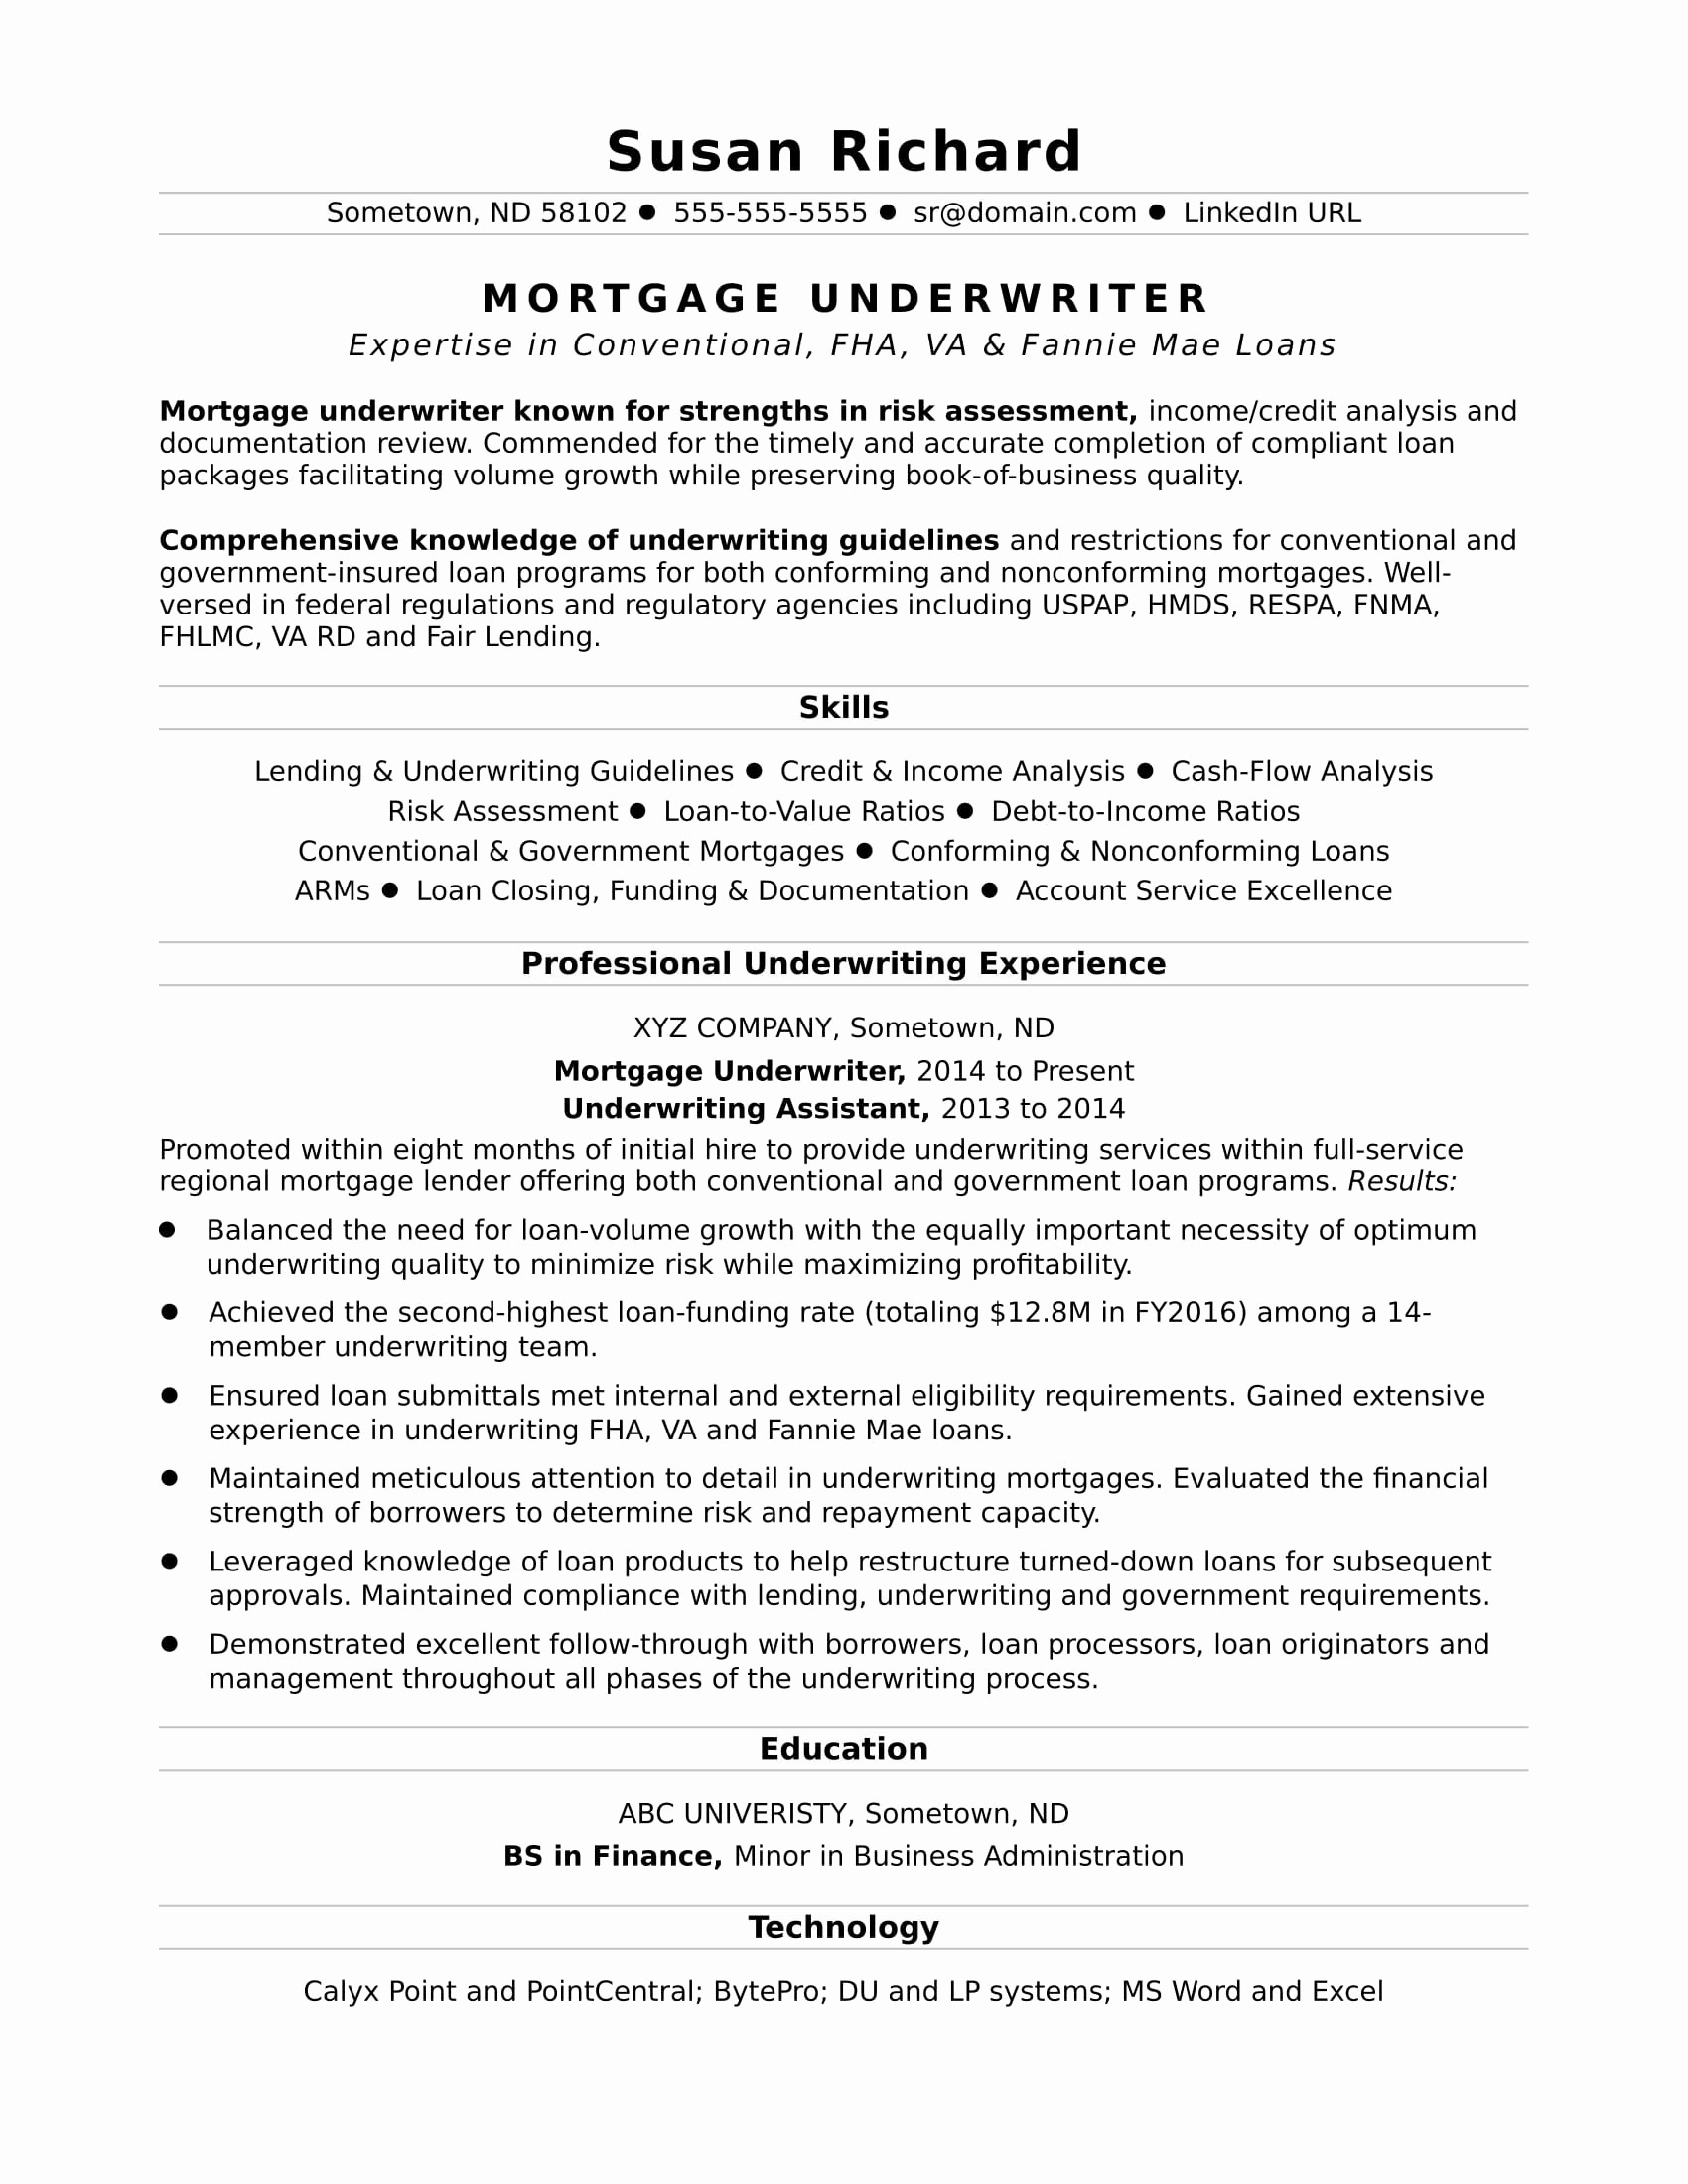 Professional Actor Resume Template - Acting Resume Example Best Volunteer Work Resume Example Best